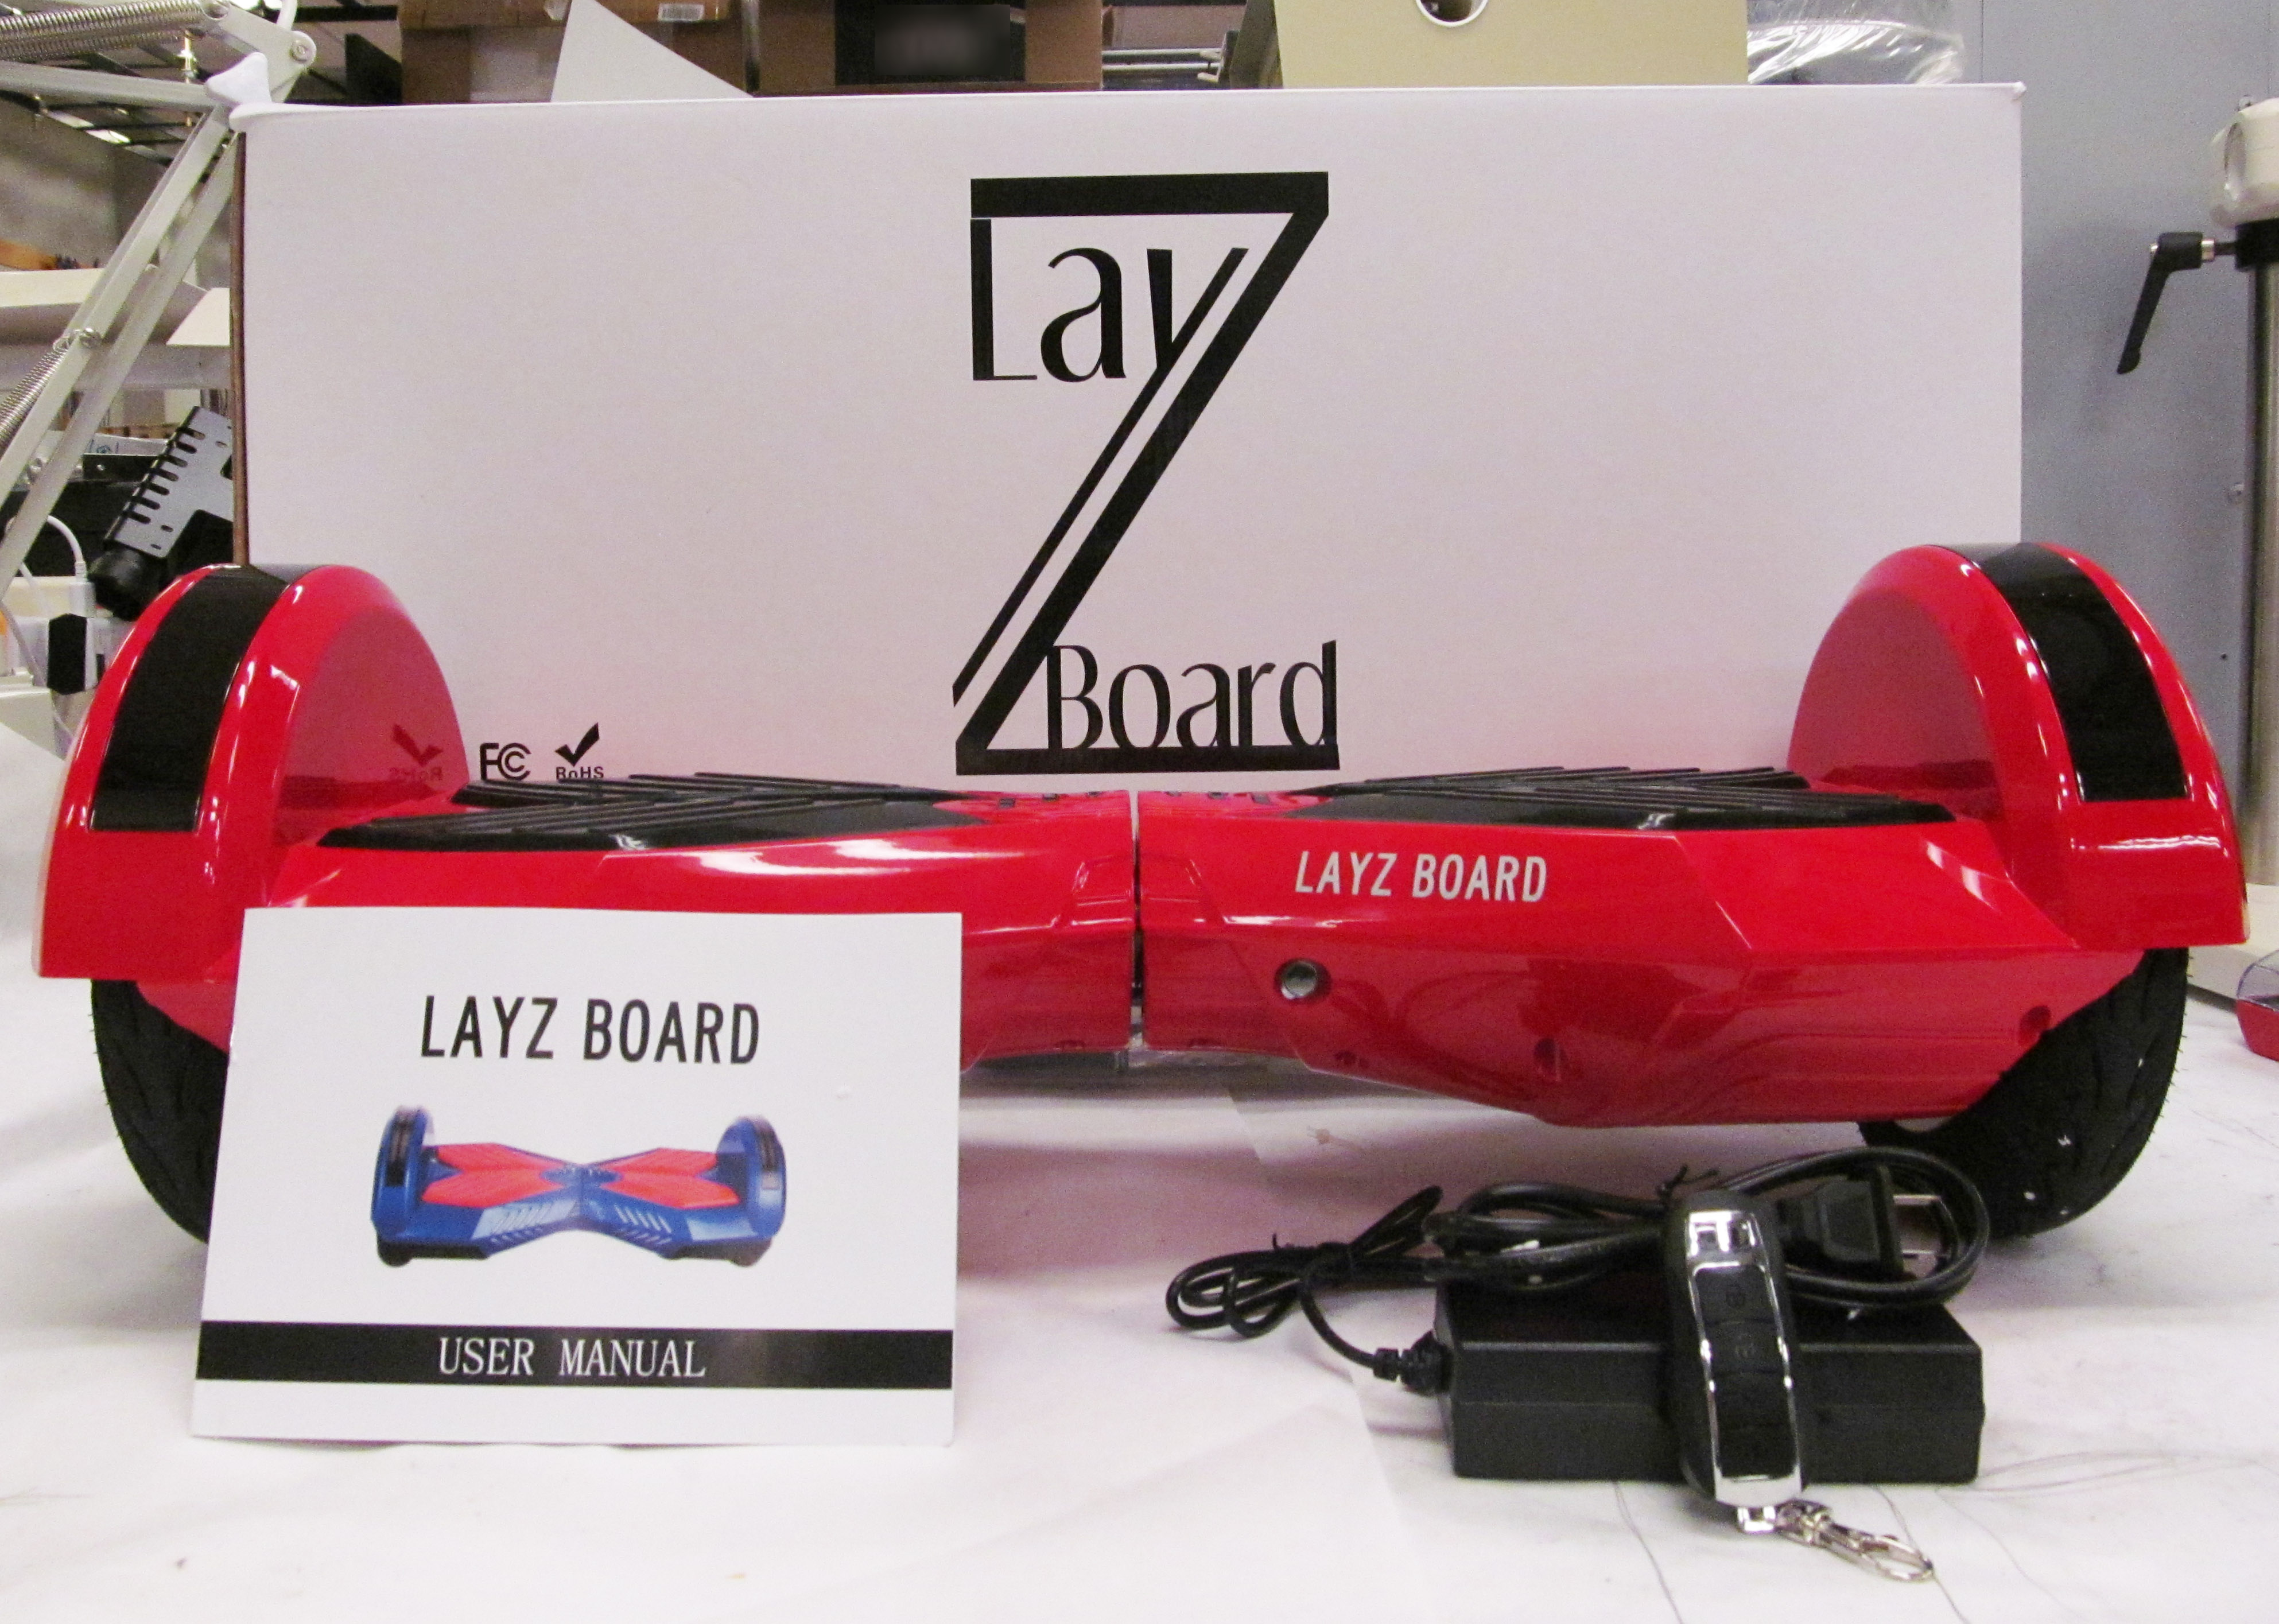 Following Second House Fire, CPSC Warns Consumers to Stop Using LayZ Board Hoverboards